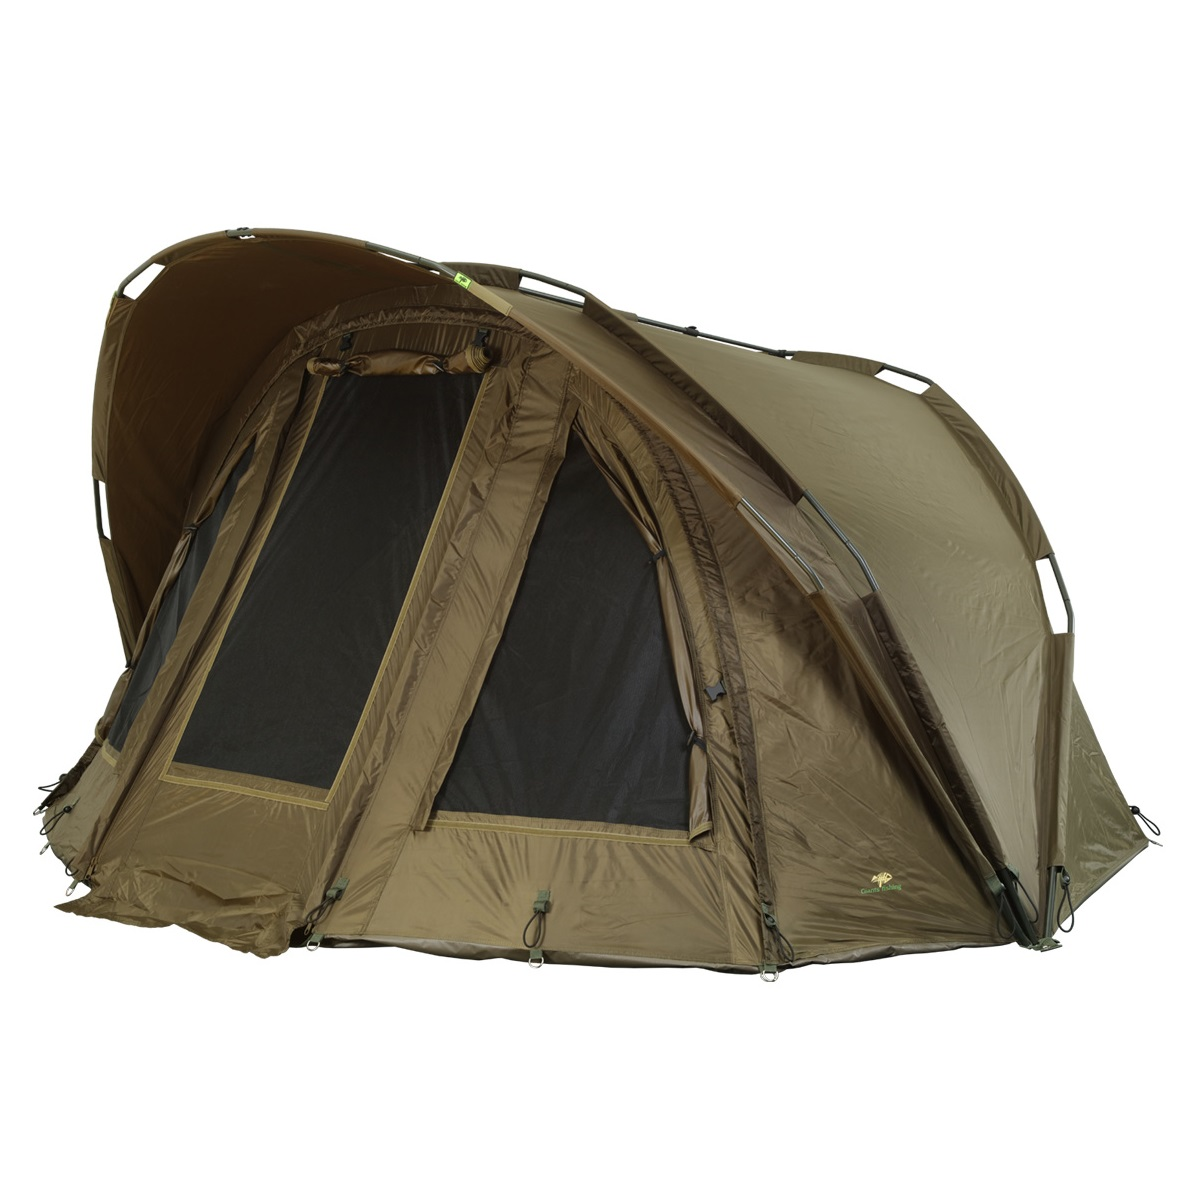 GIANTS FISHING BIVAK GAUBE BIVVY 2 MAN